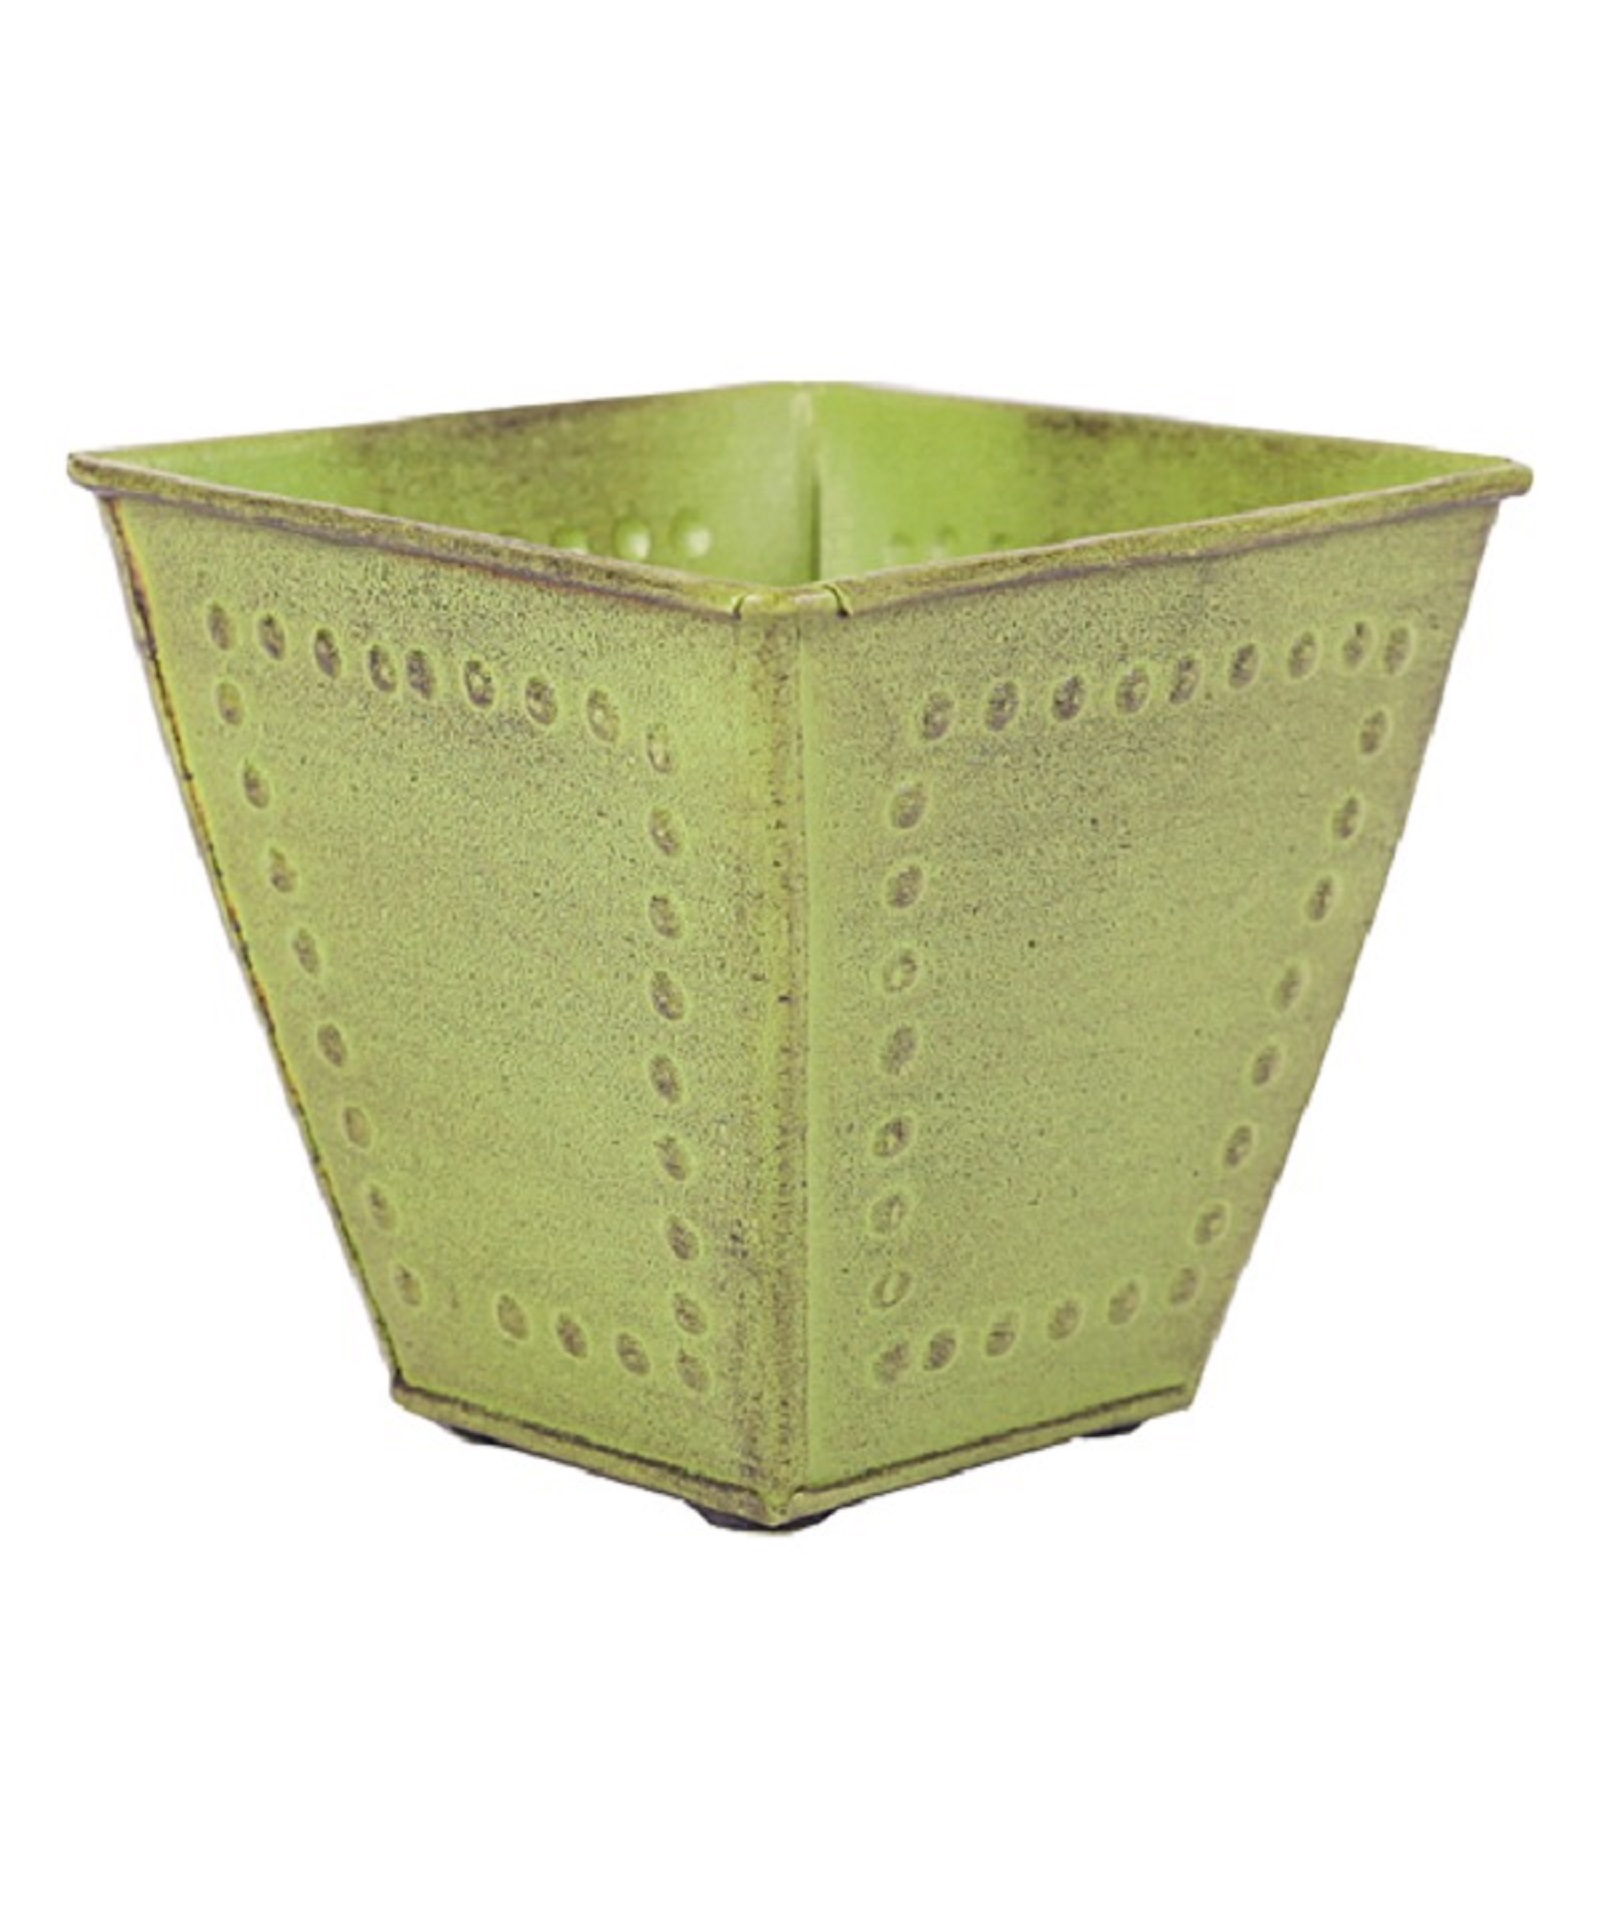 "Robert Allen Home & Garden Metal Square Planter 8"""" Green"